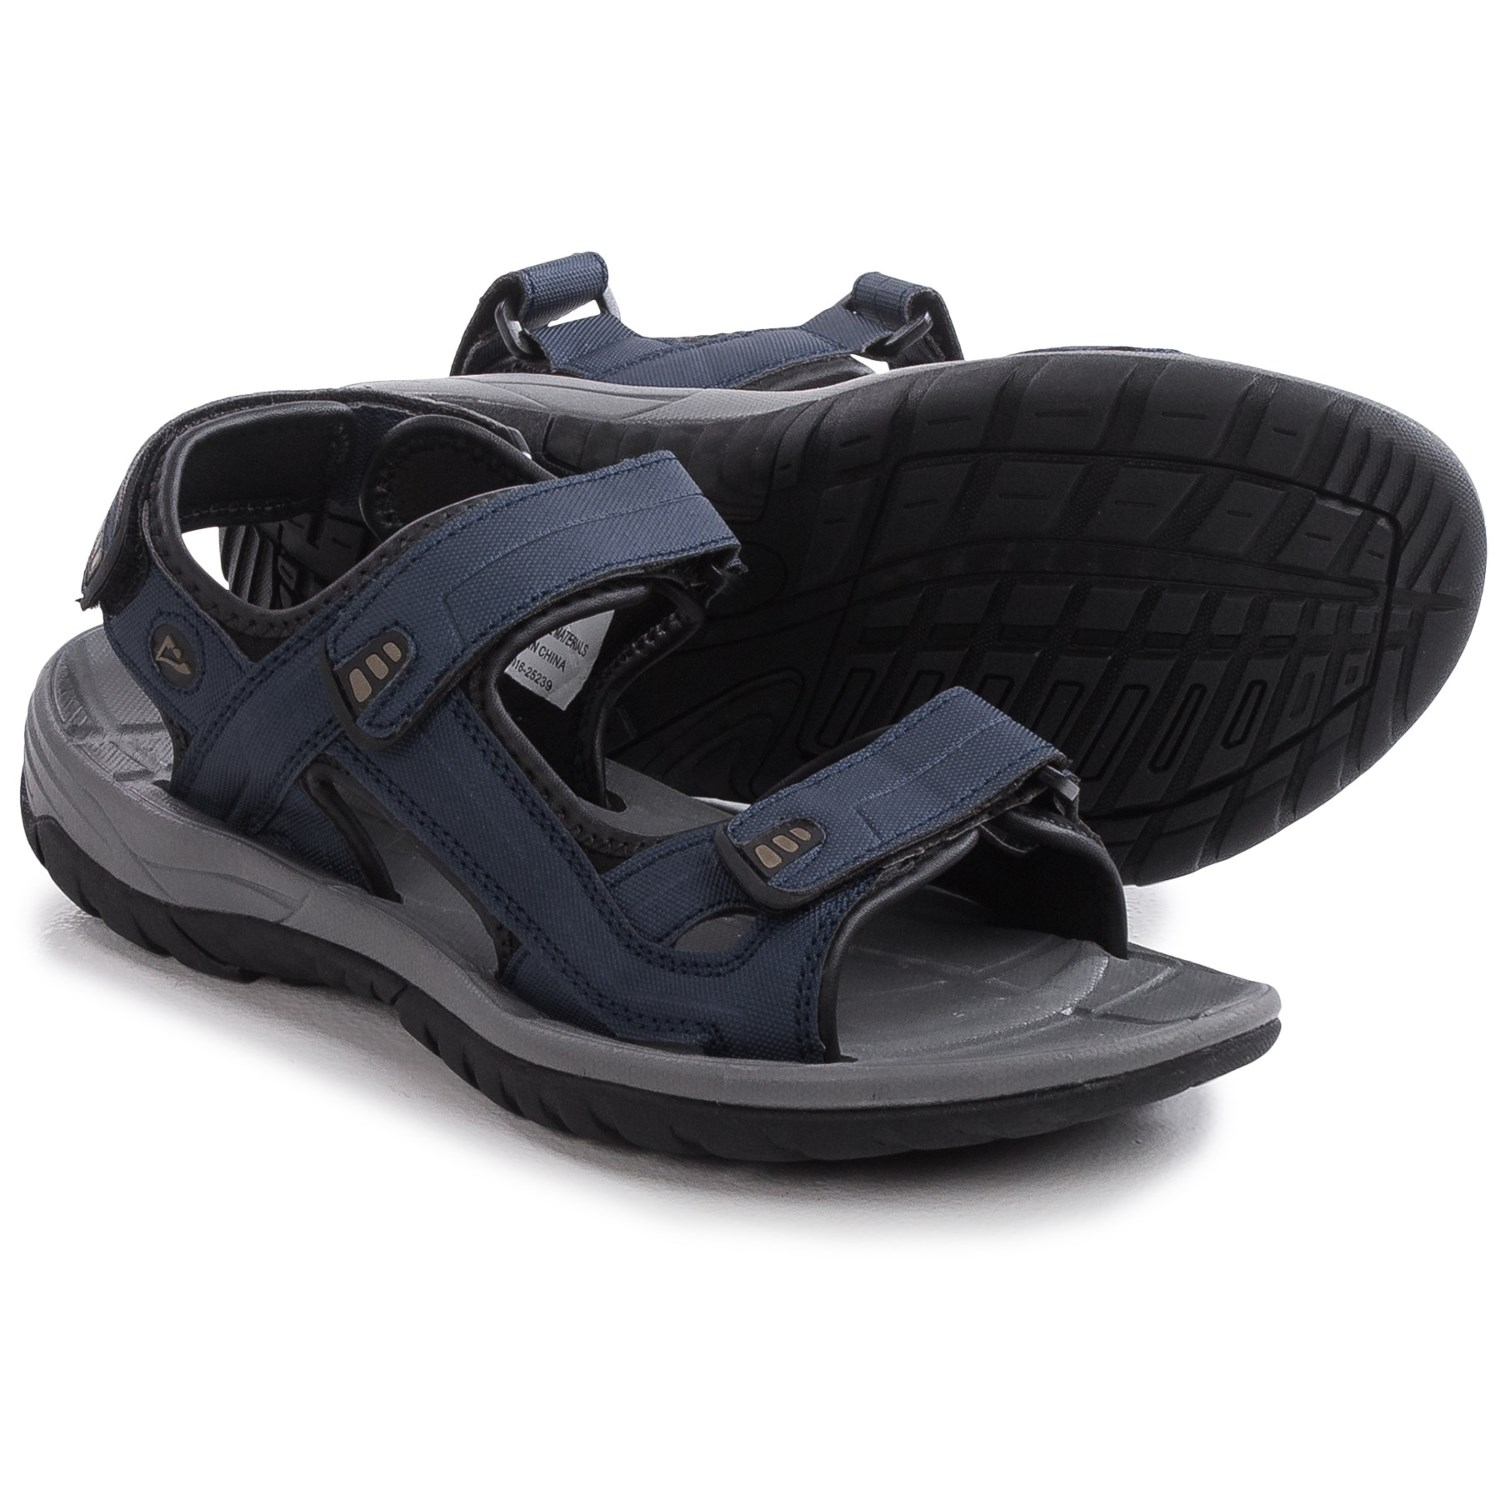 Sandals Alpine Design